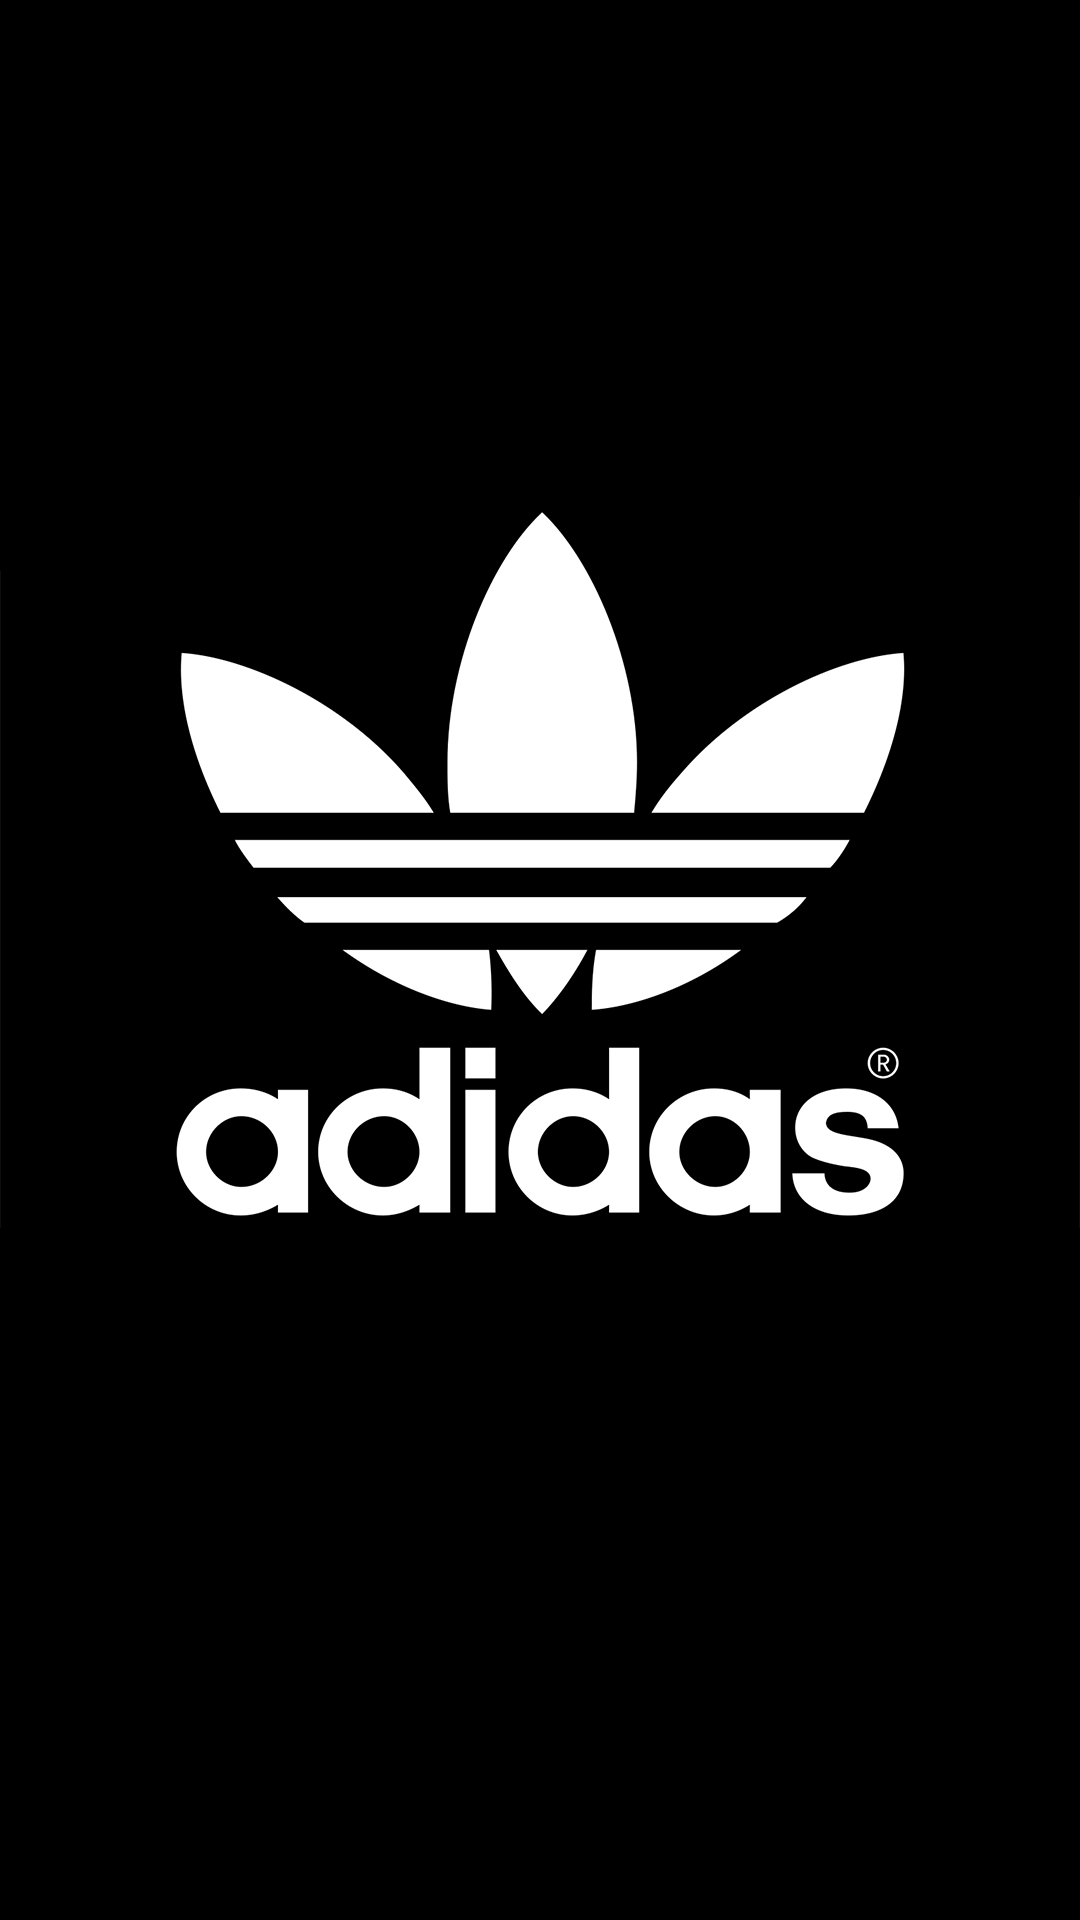 Ultra Hd Adidas Original Wallpaper For Your Mobile Phone 0006